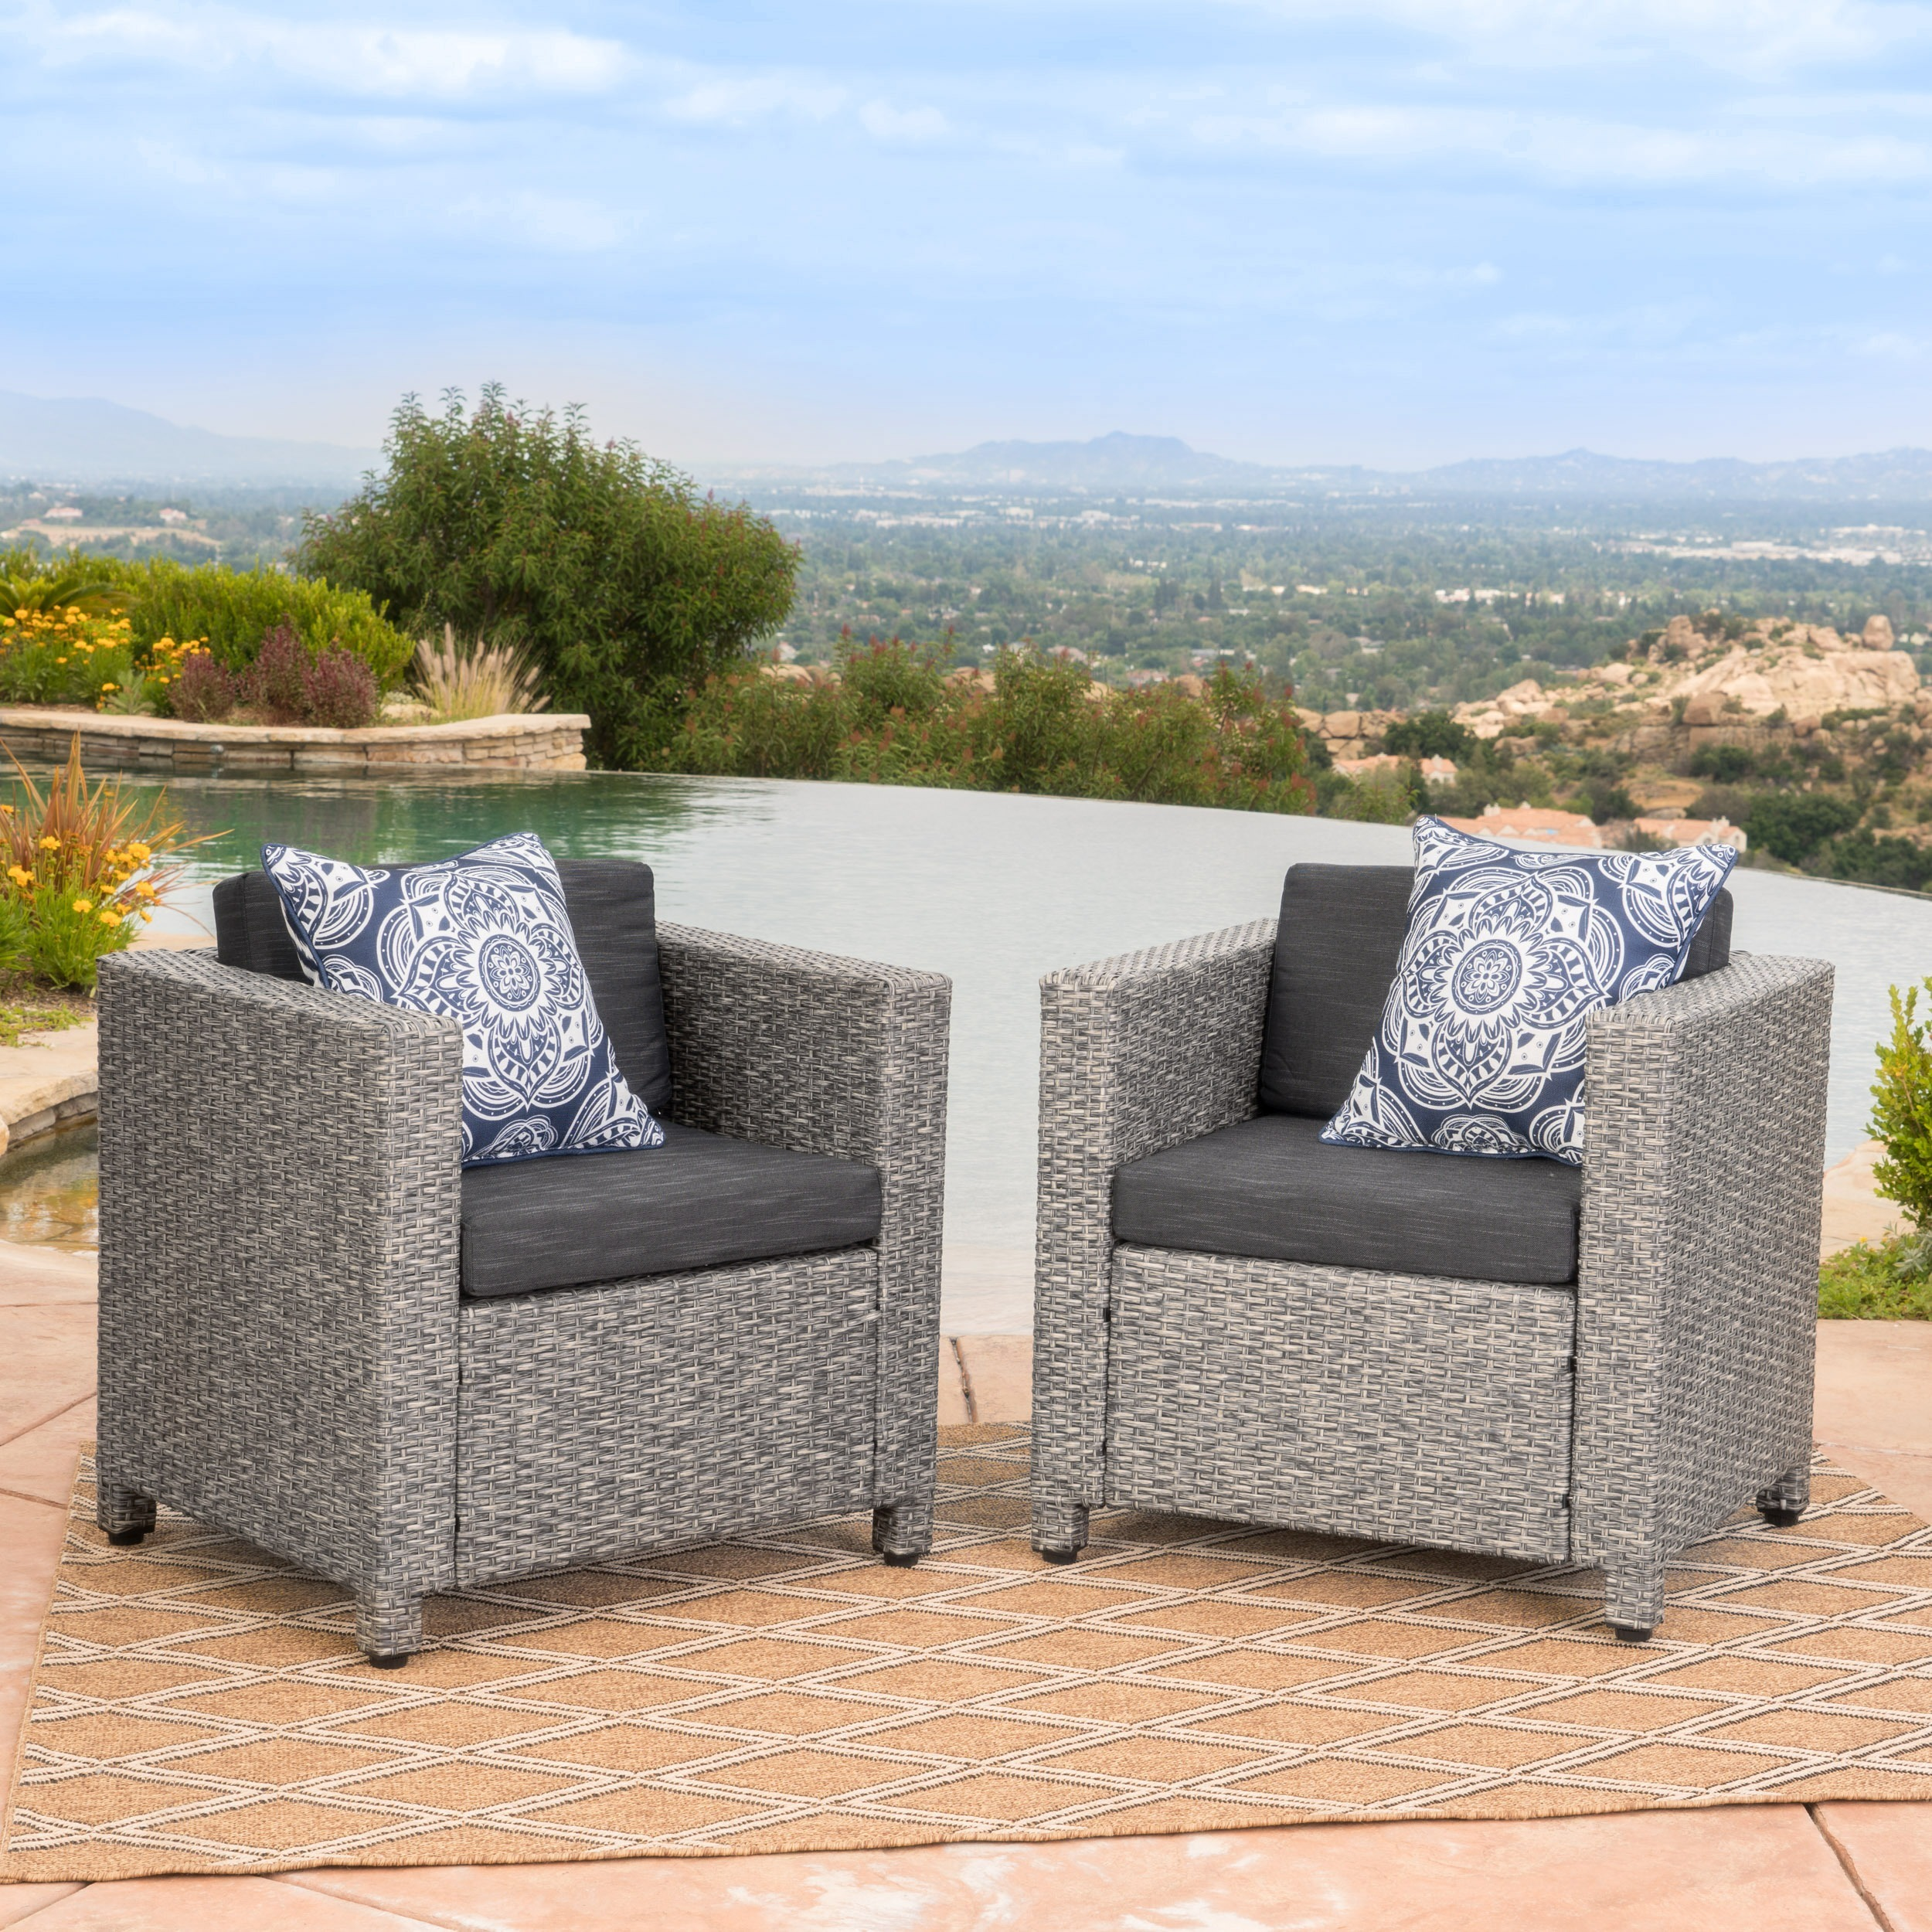 chairs with of products wicker clara dining chair cushion outdoor set great